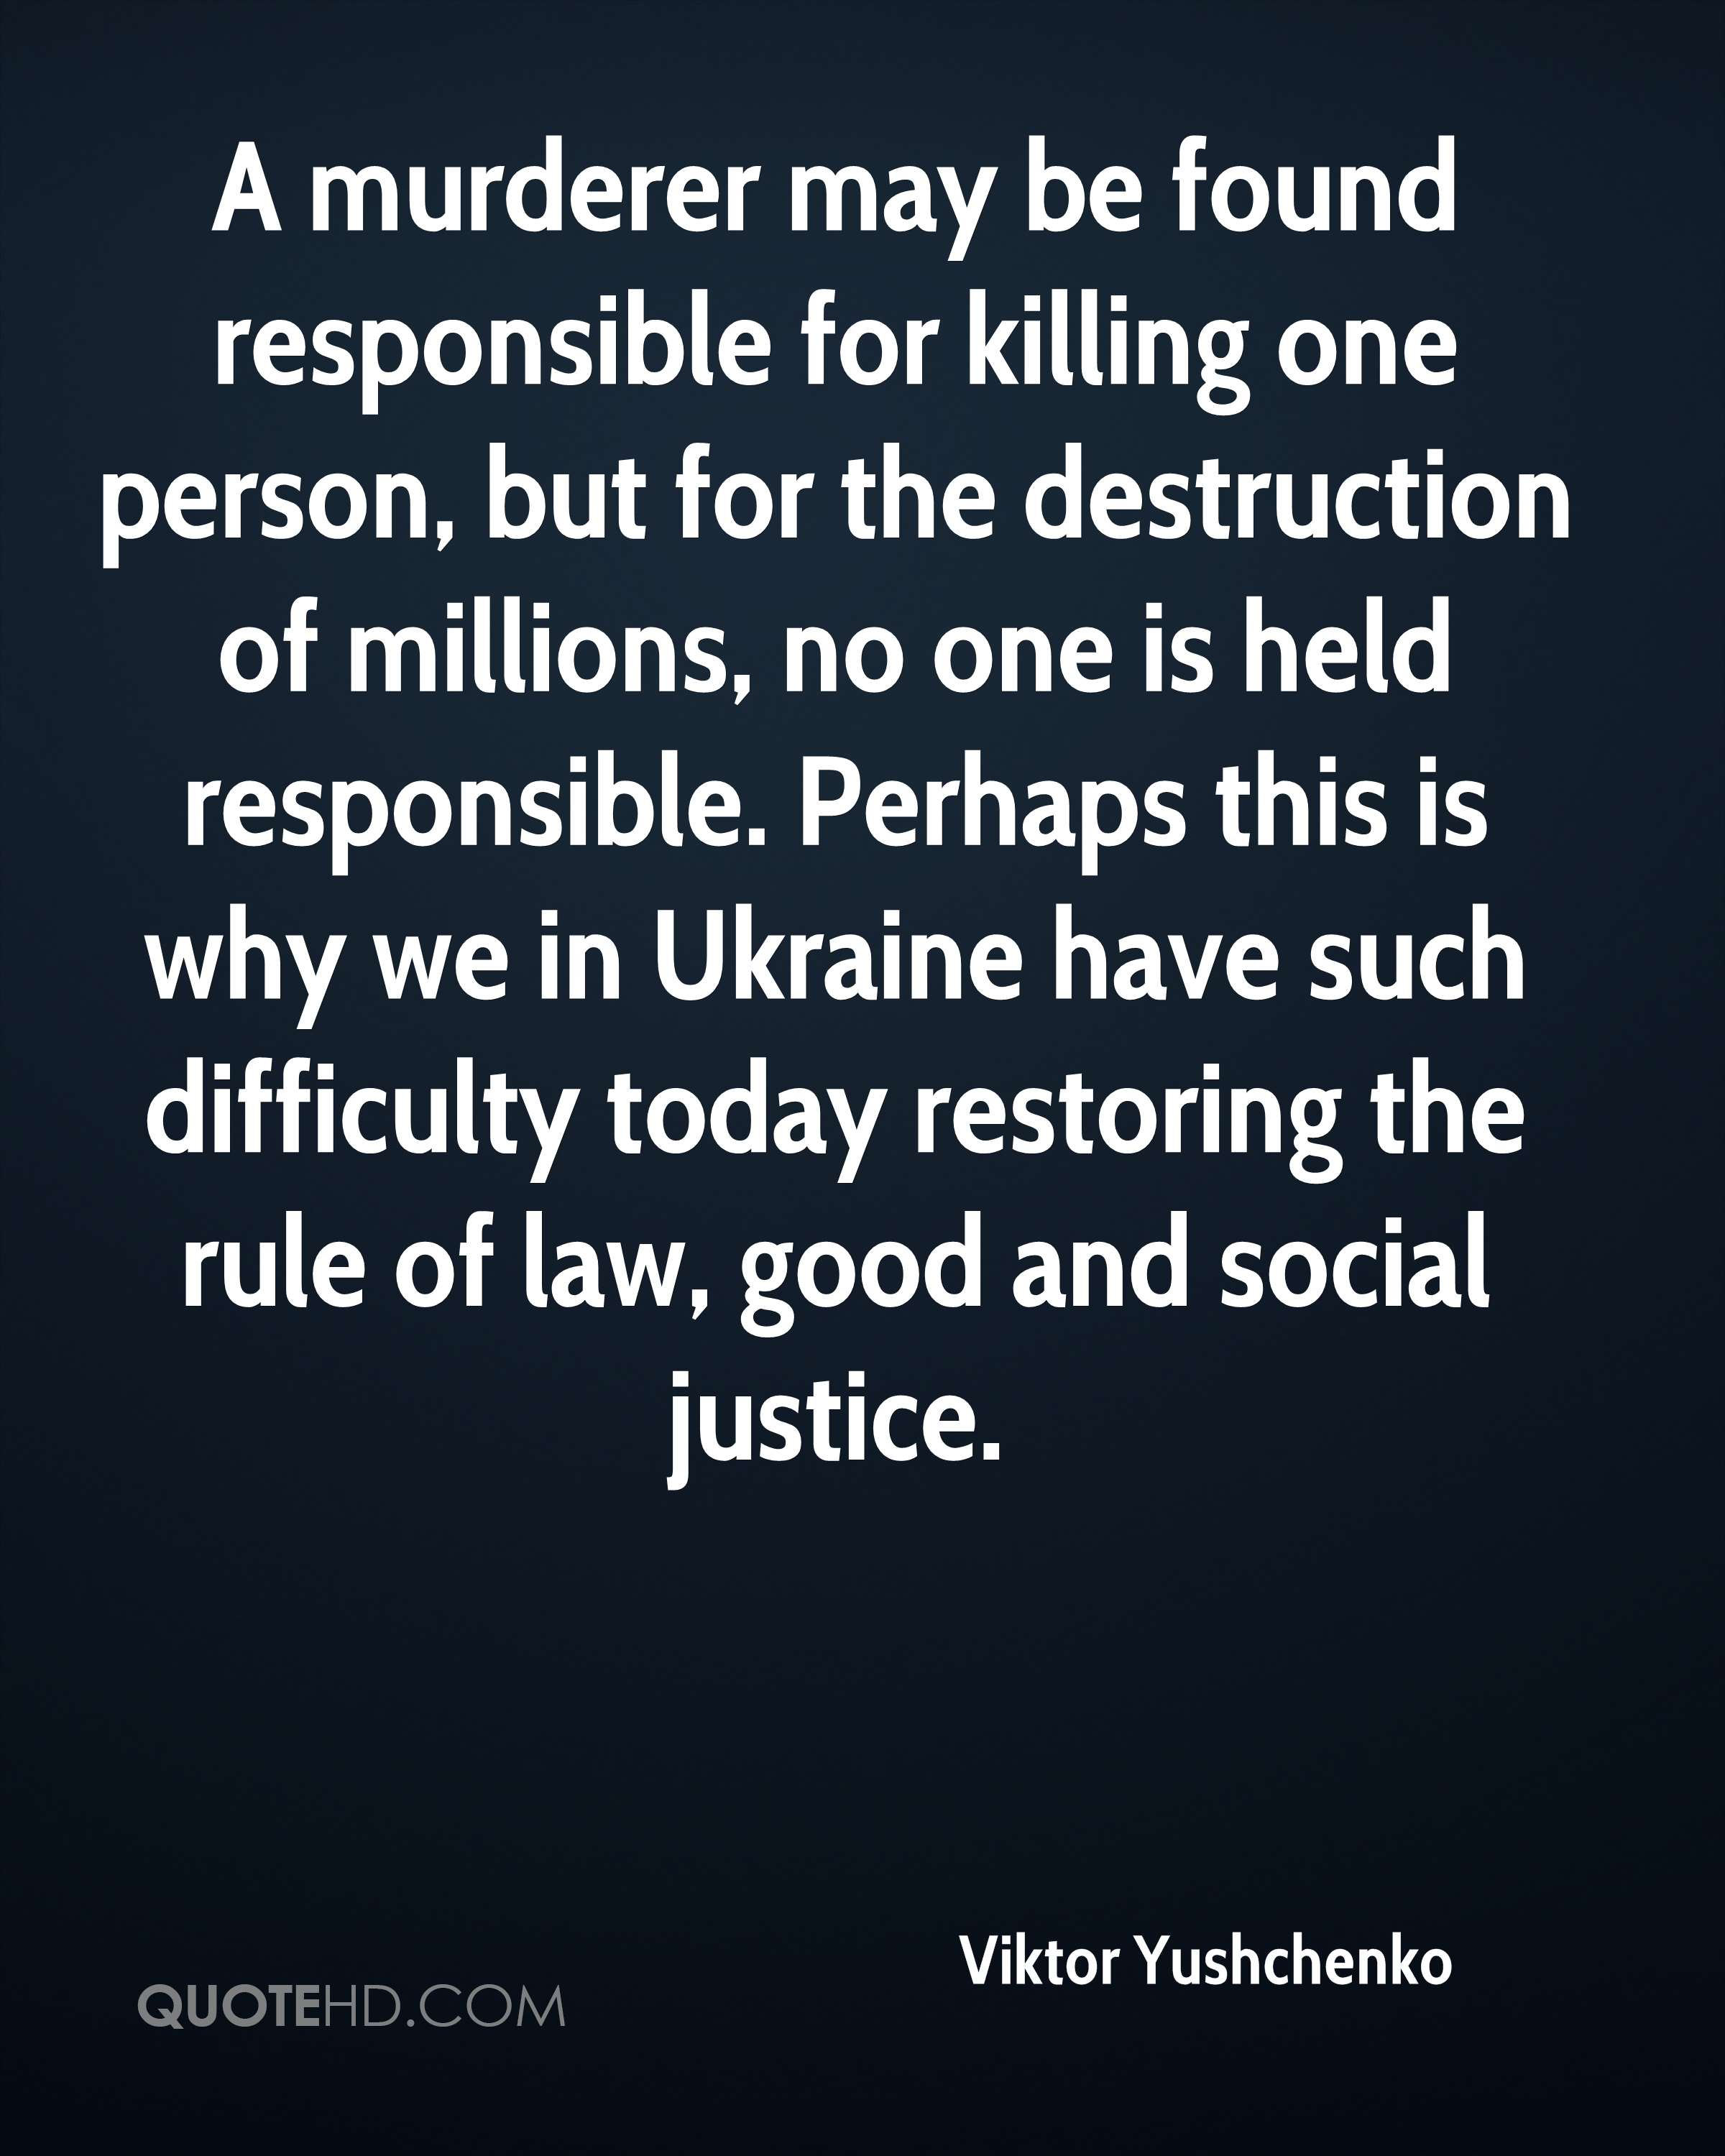 A murderer may be found responsible for killing one person, but for the destruction of millions, no one is held responsible. Perhaps this is why we in Ukraine have such difficulty today restoring the rule of law, good and social justice.